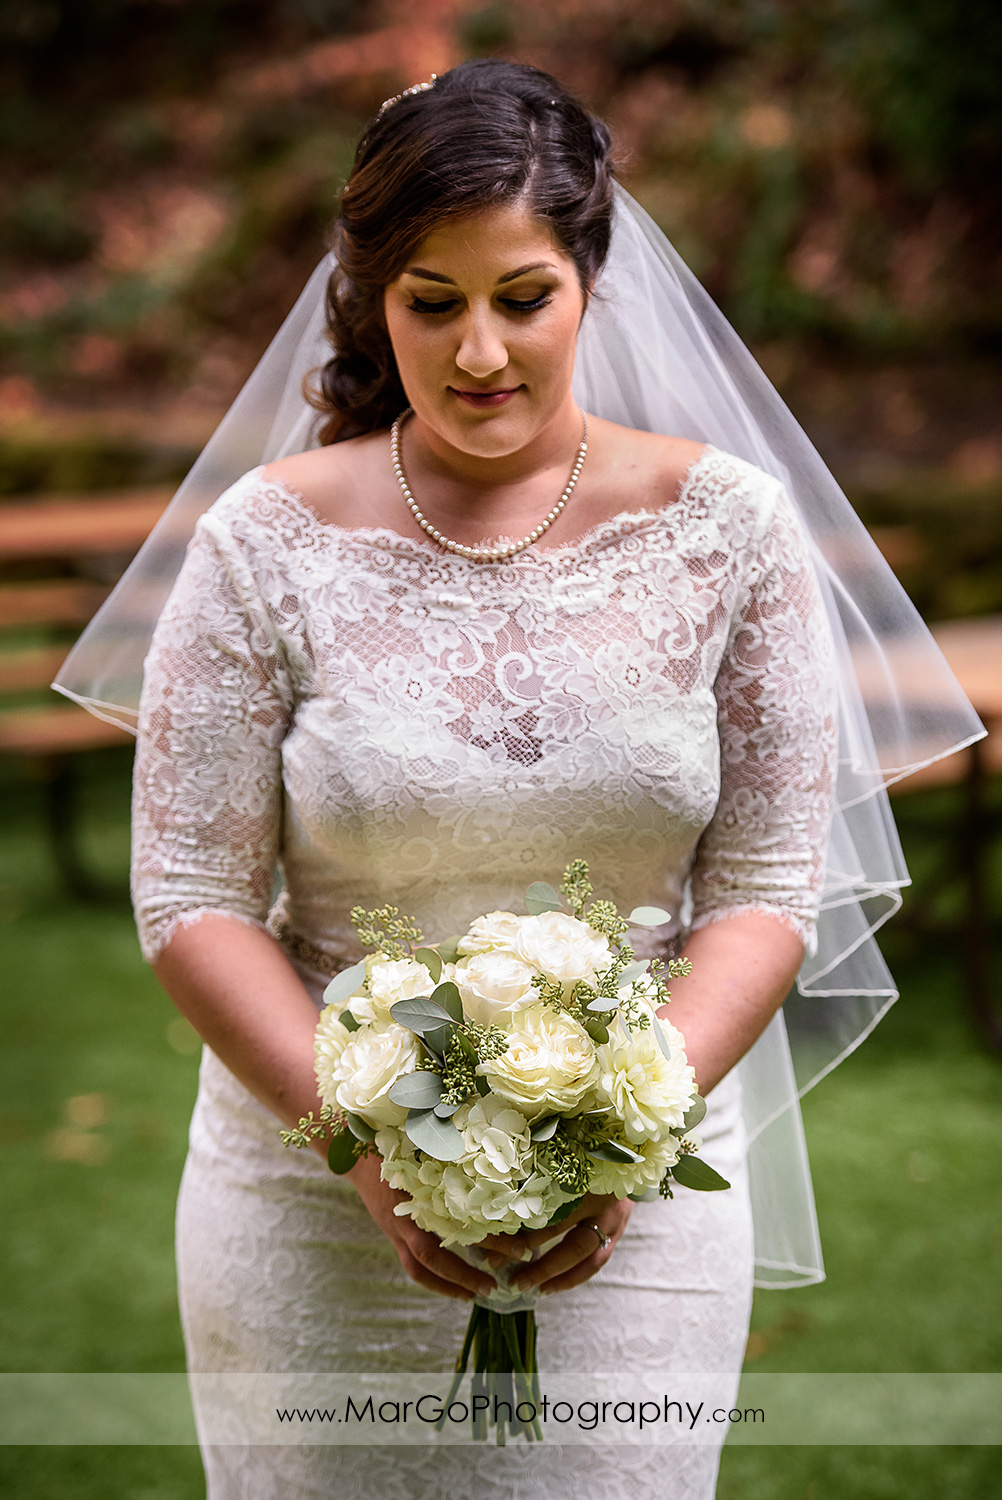 3/4 portrait of bride in white dress holding wedding bouquet at Saratoga Springs Cathedral Grove